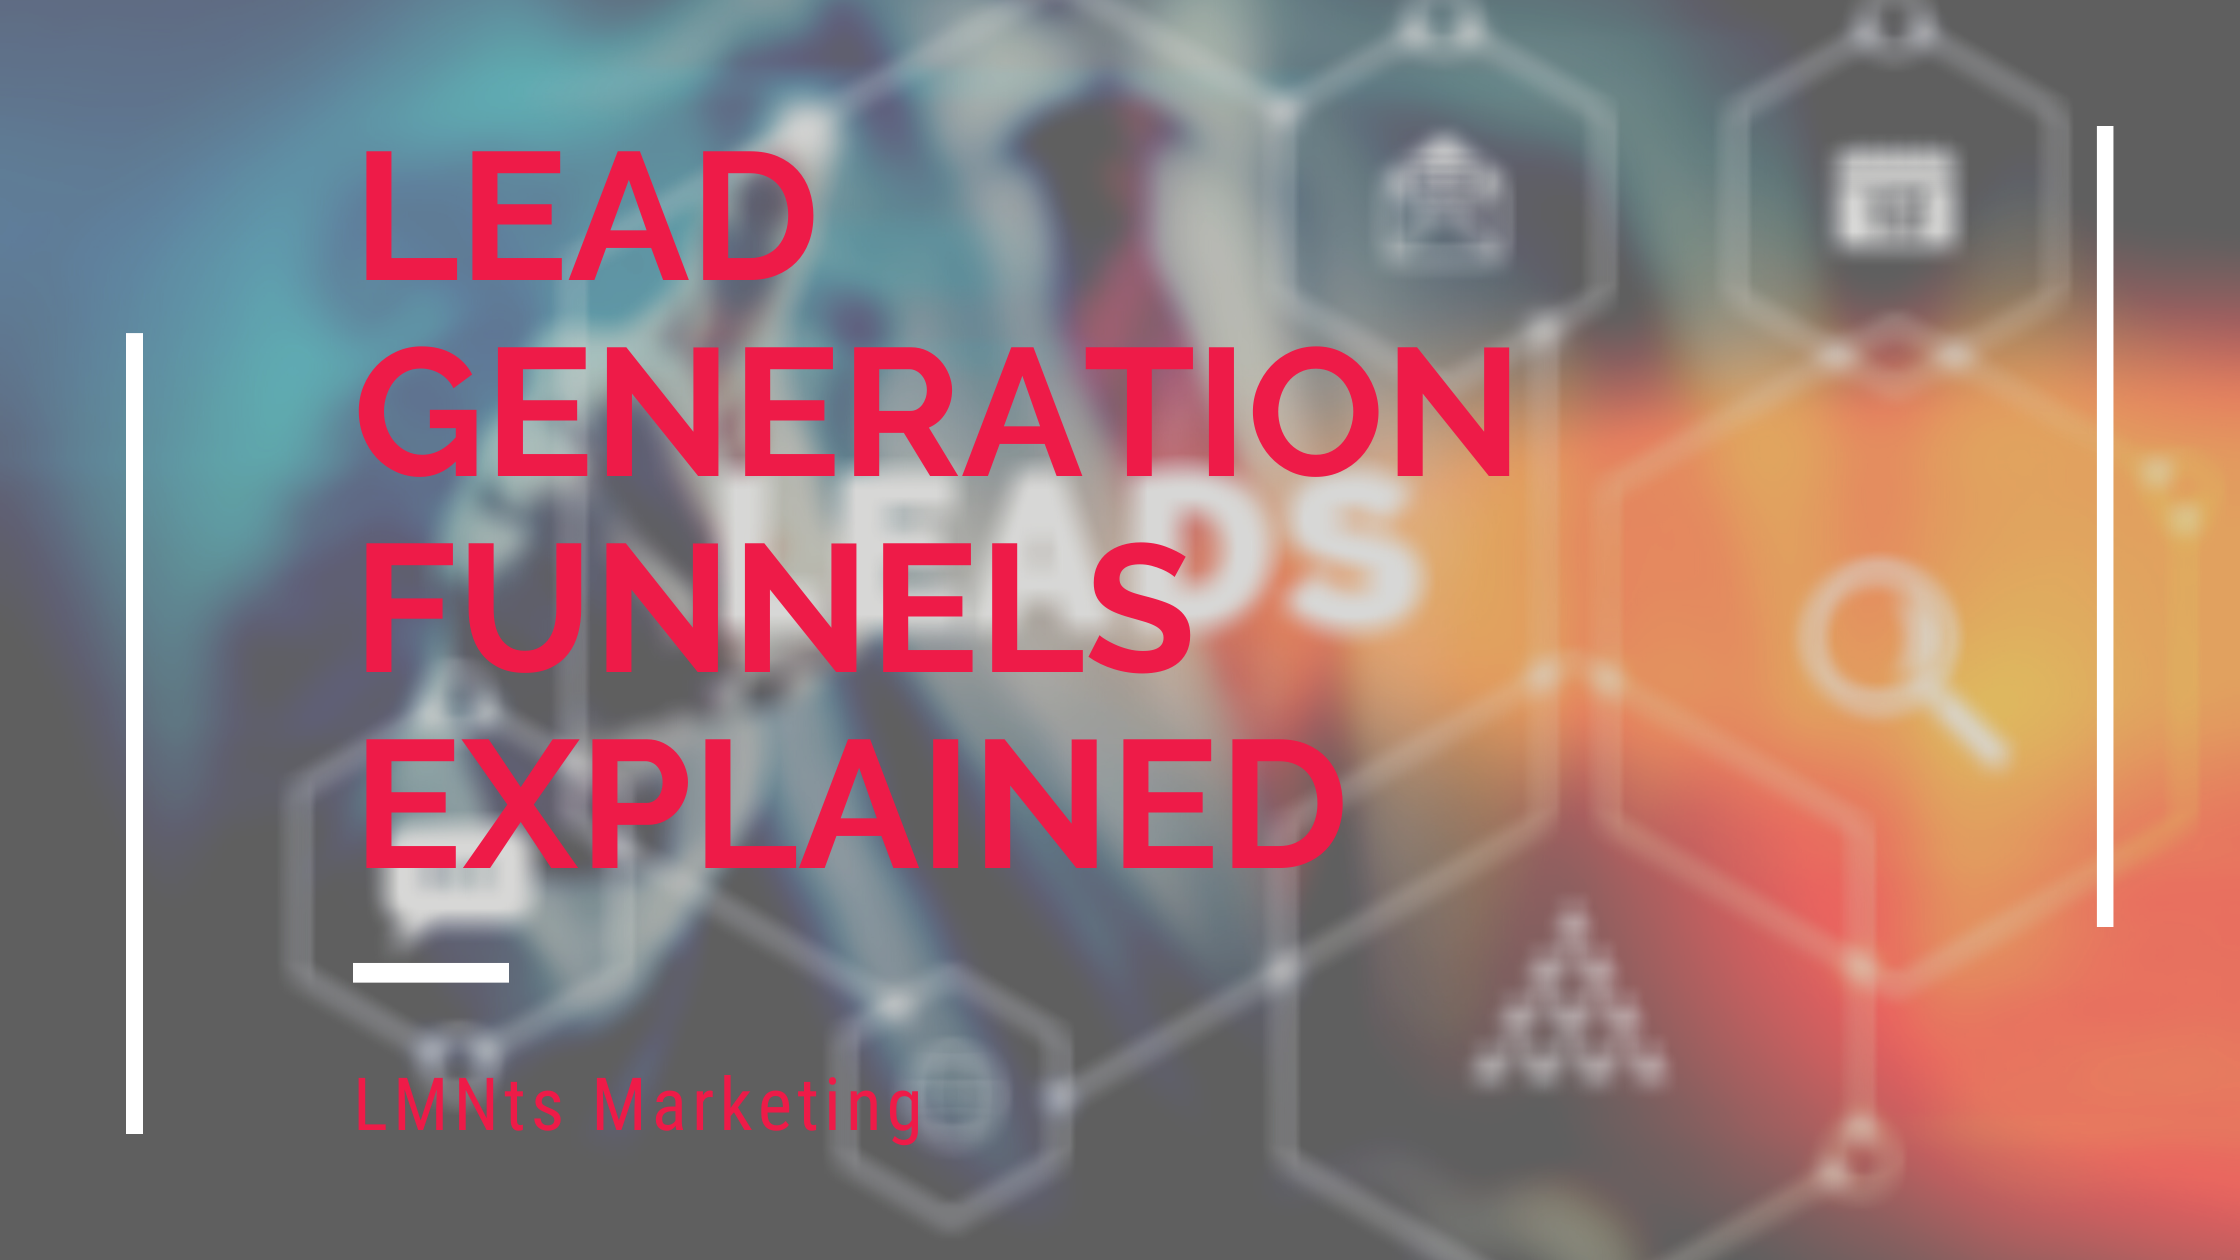 sales funnel lead generation